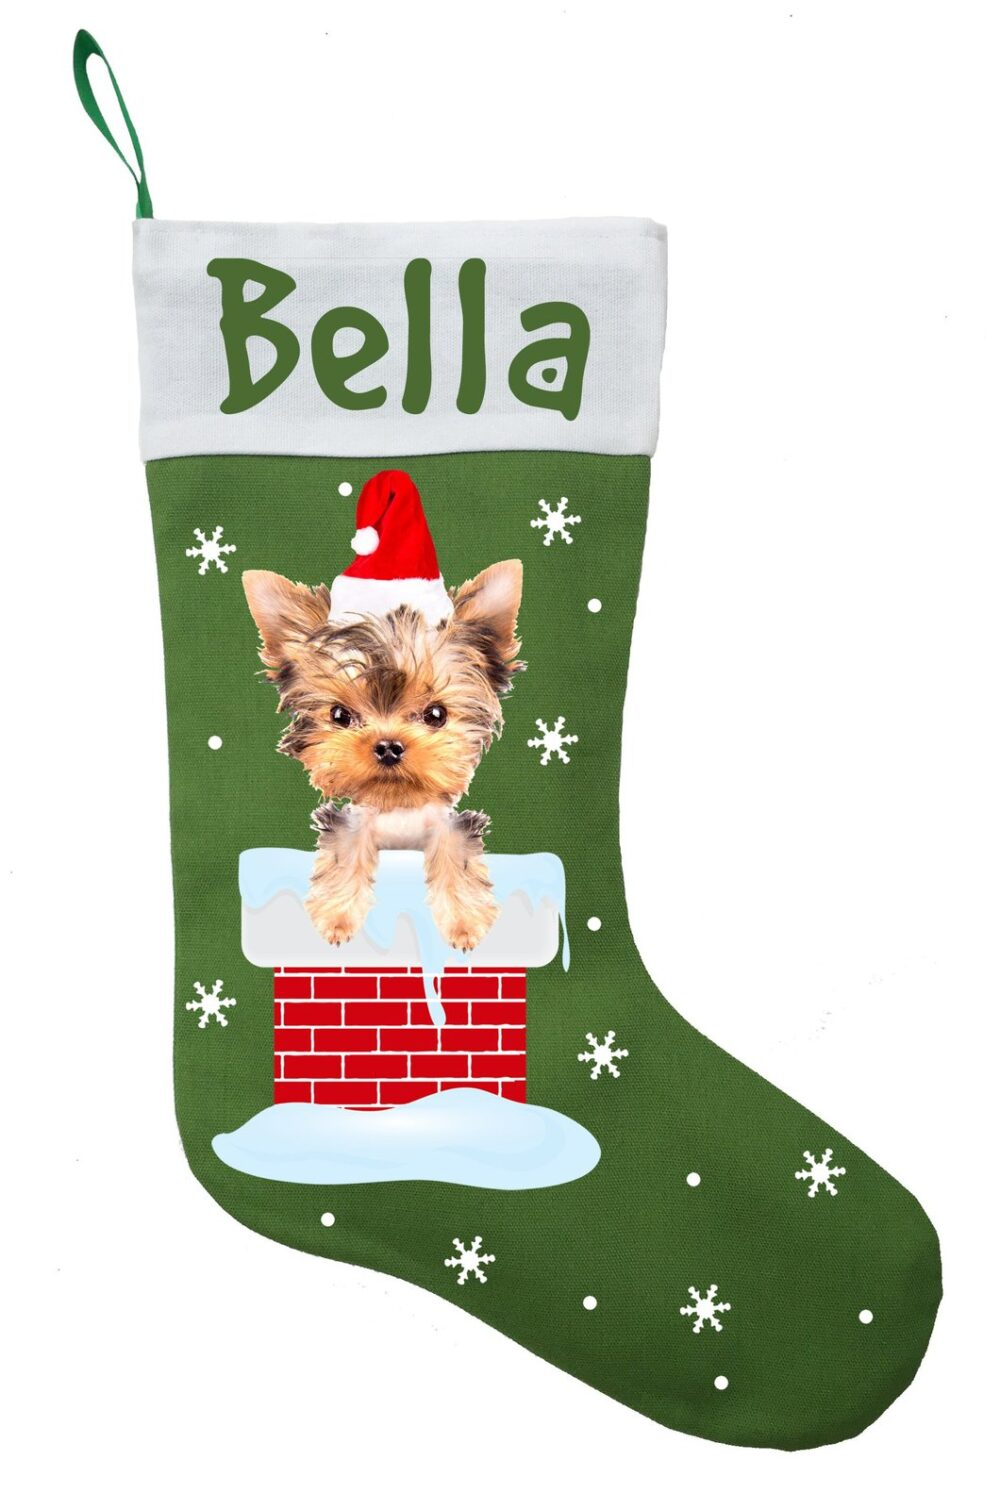 Yorkshire Terrier Christmas Stocking - Personalized Yorkie Stocking - Green